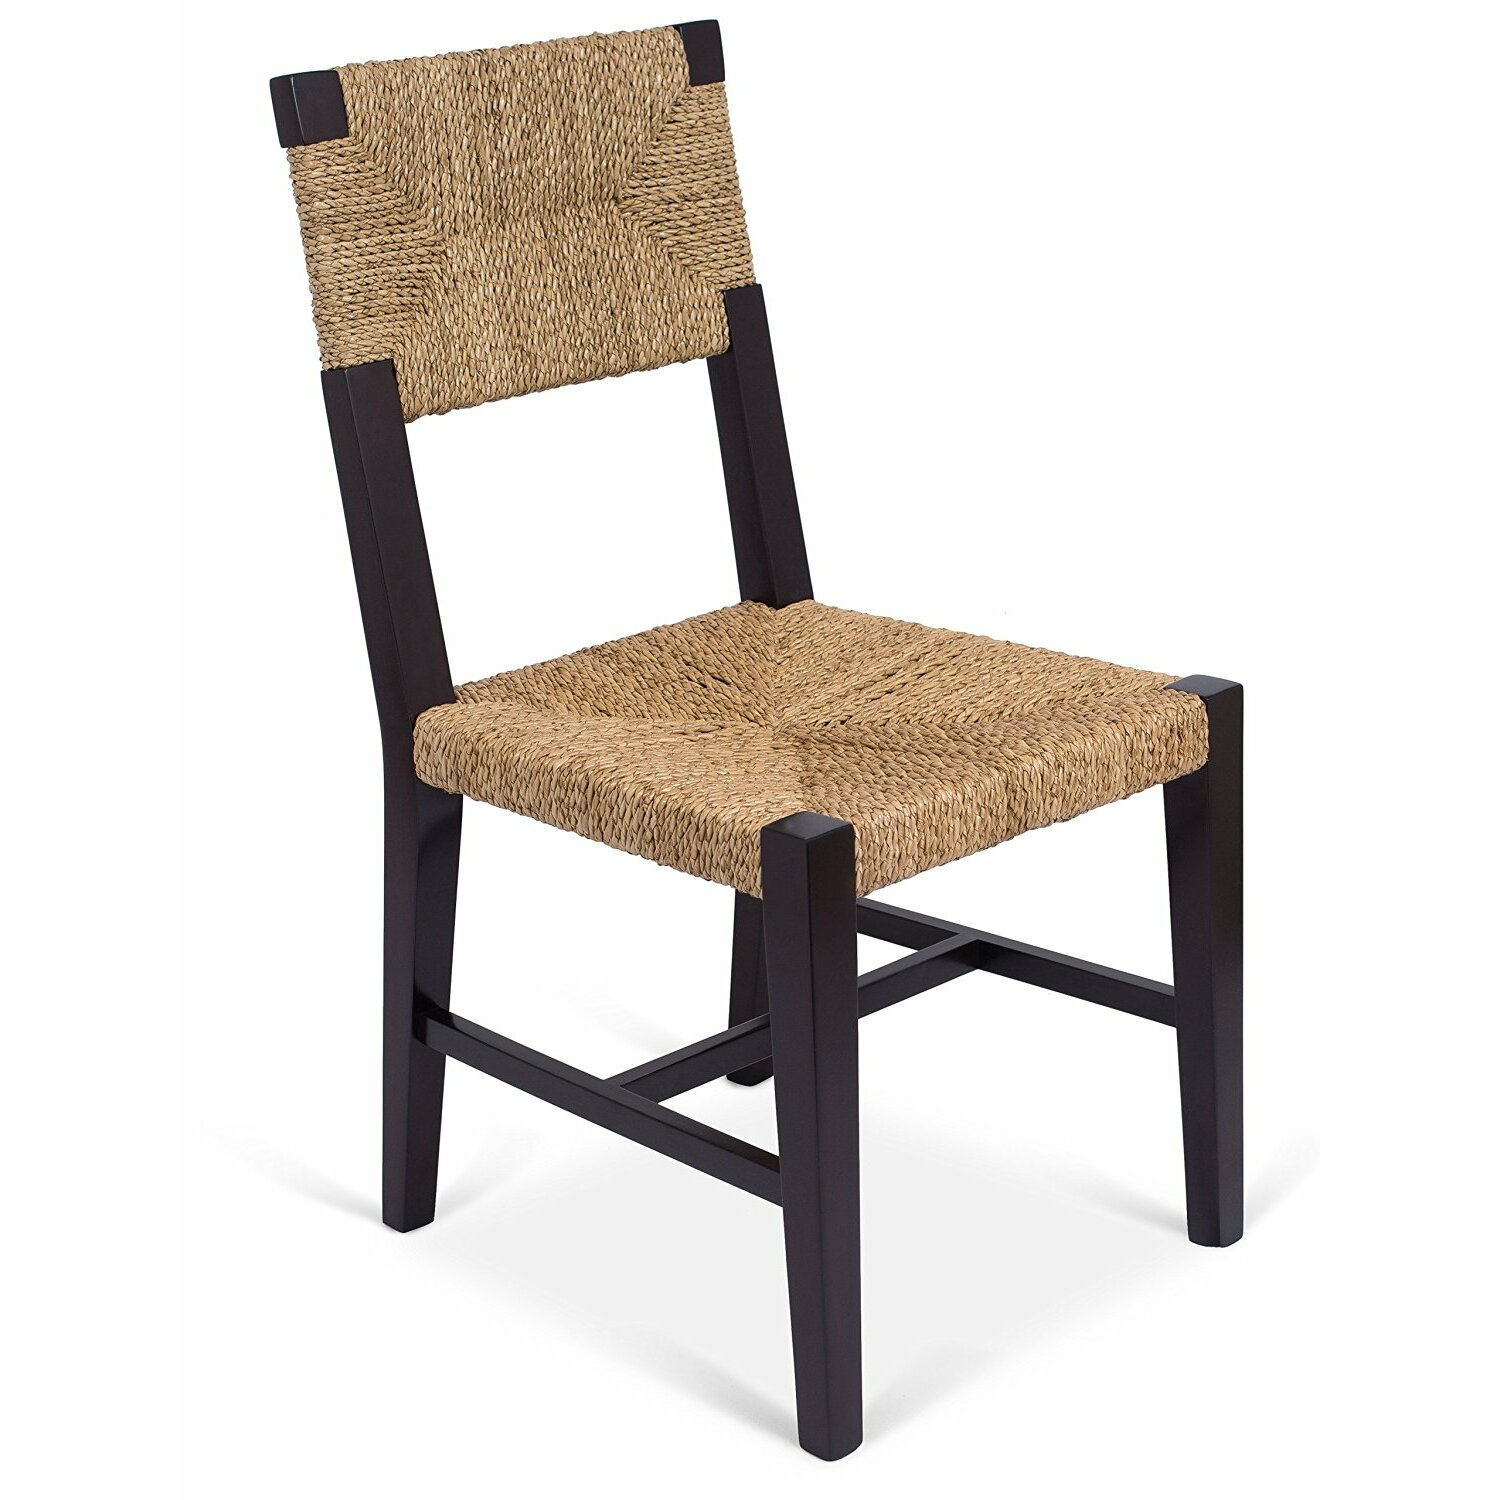 Birdrock home rush weave solid wood dining chair wayfair